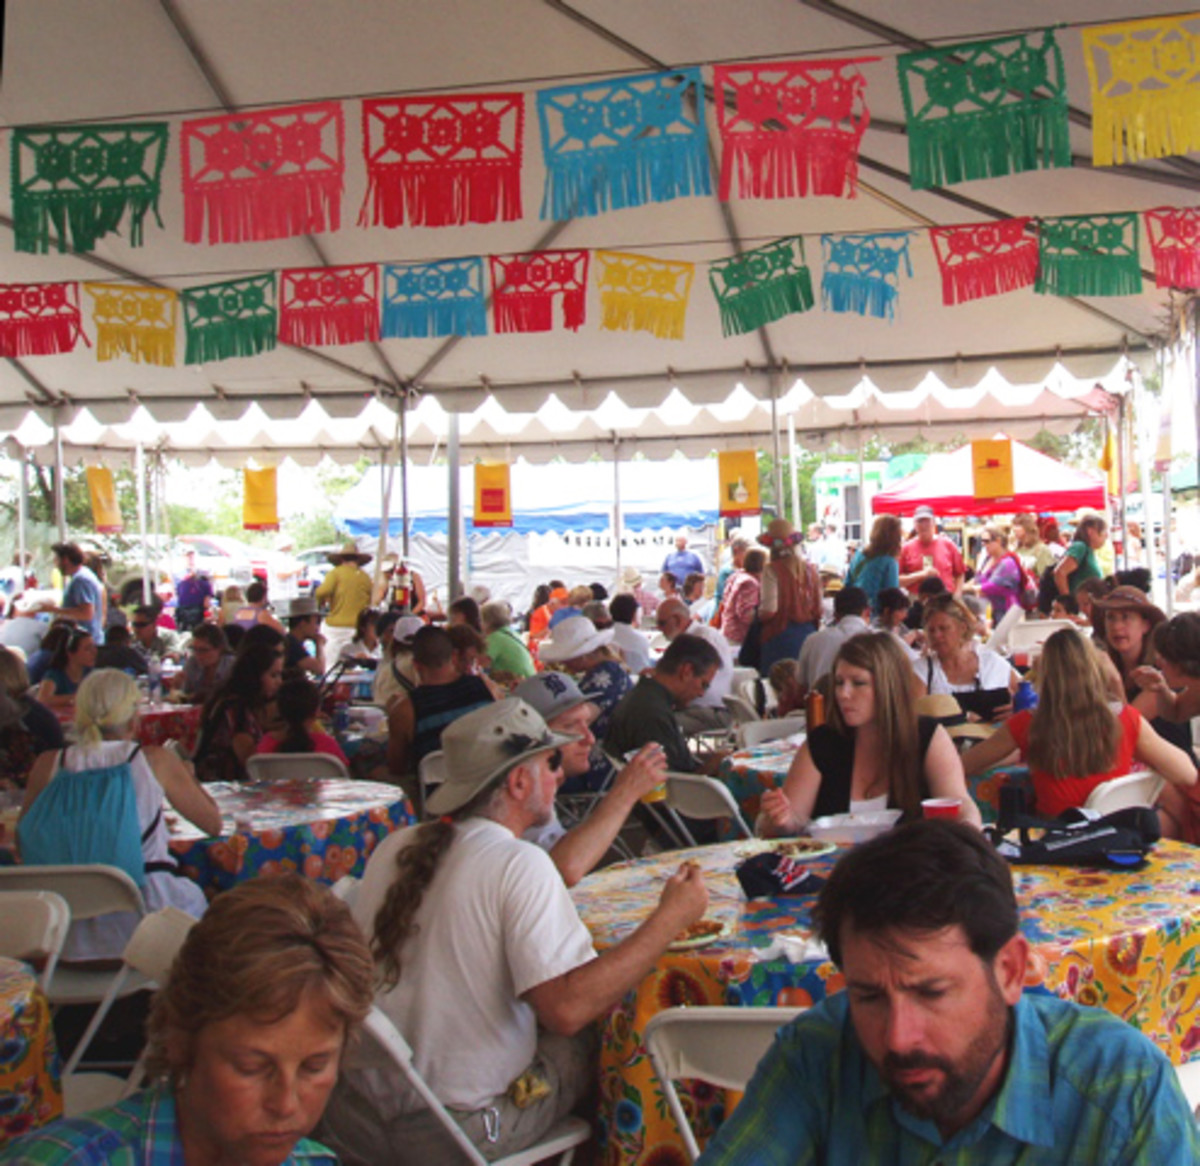 Attendees share an outdoor tent, while eating meals bought at ethnic food booths.